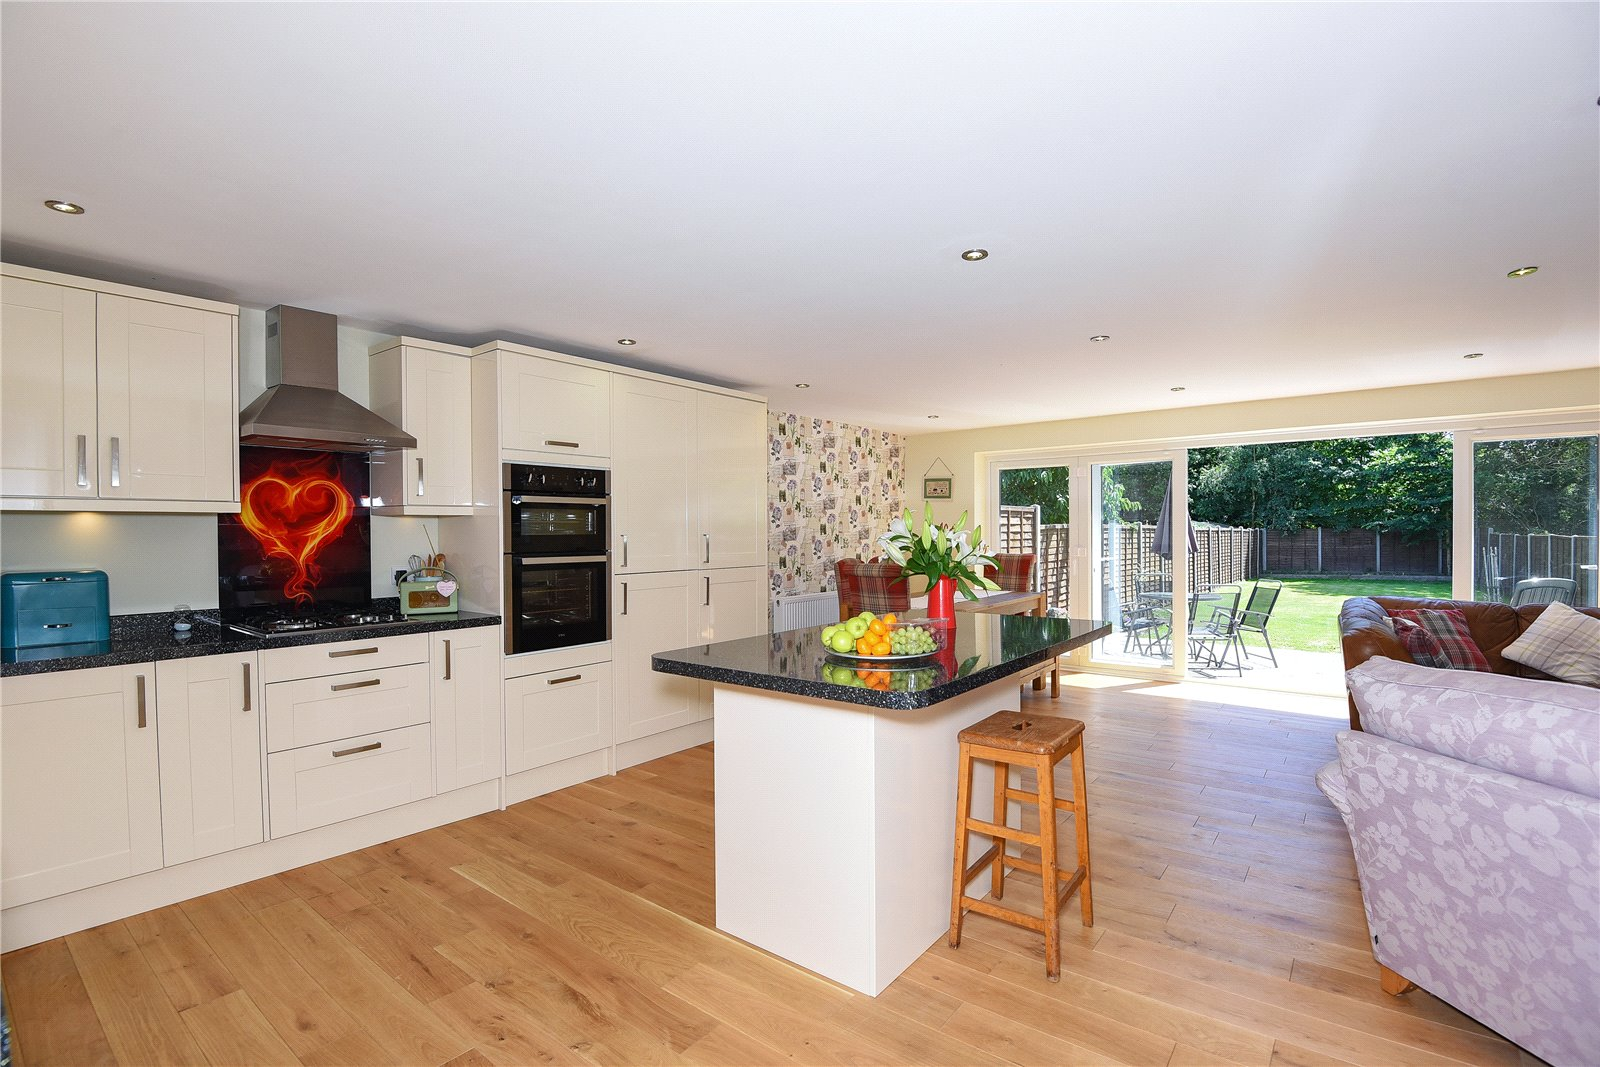 4 Bedrooms House for sale in Evendons Lane, Wokingham, Berkshire, RG41